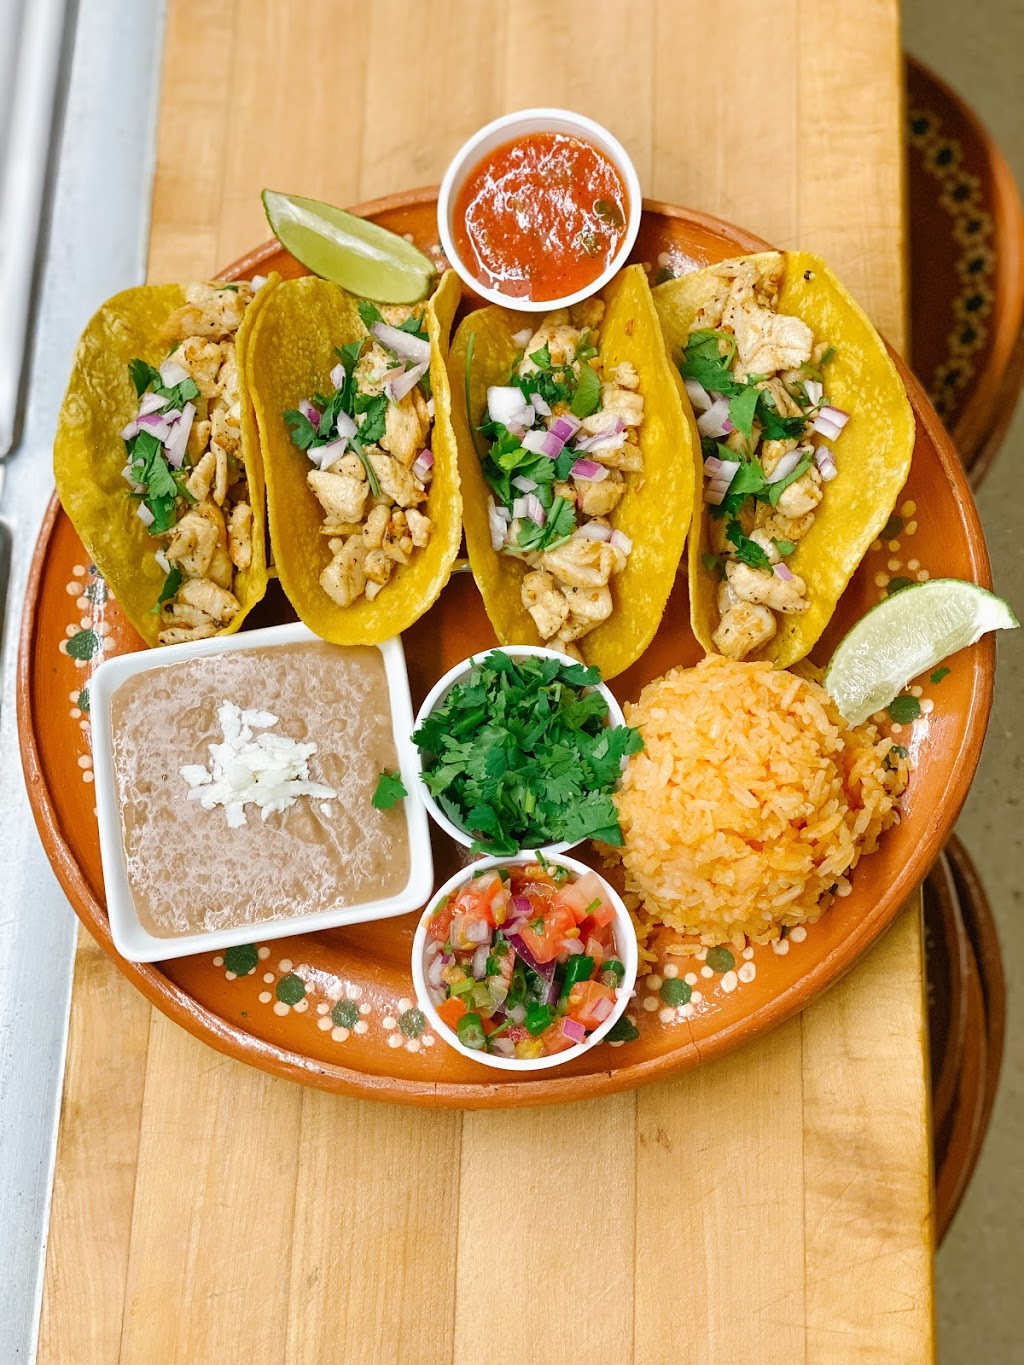 Flavors of Mexico | restaurant | 370 Main St, Winkler, MB R6W 1G5, Canada | 2043251655 OR +1 204-325-1655